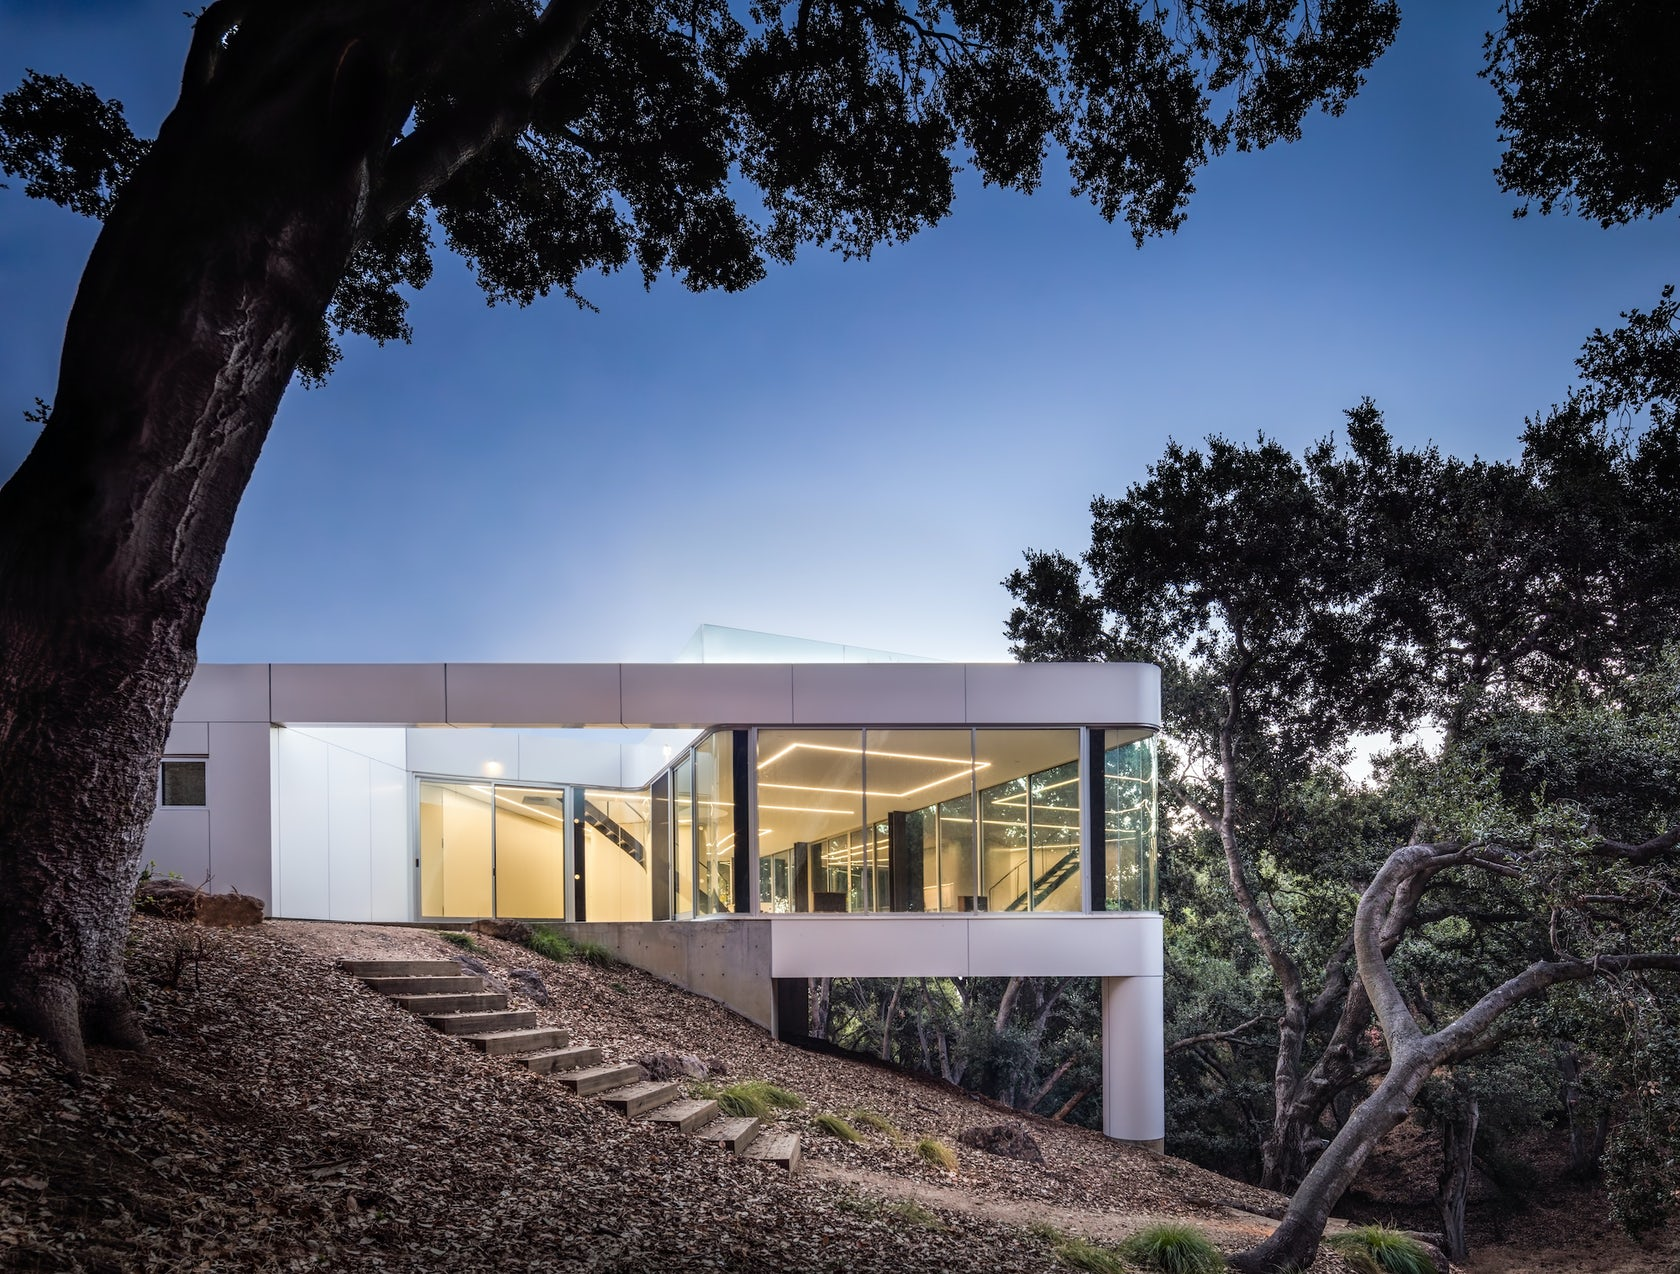 Craig steely architecture architizer for Archi in casa moderna